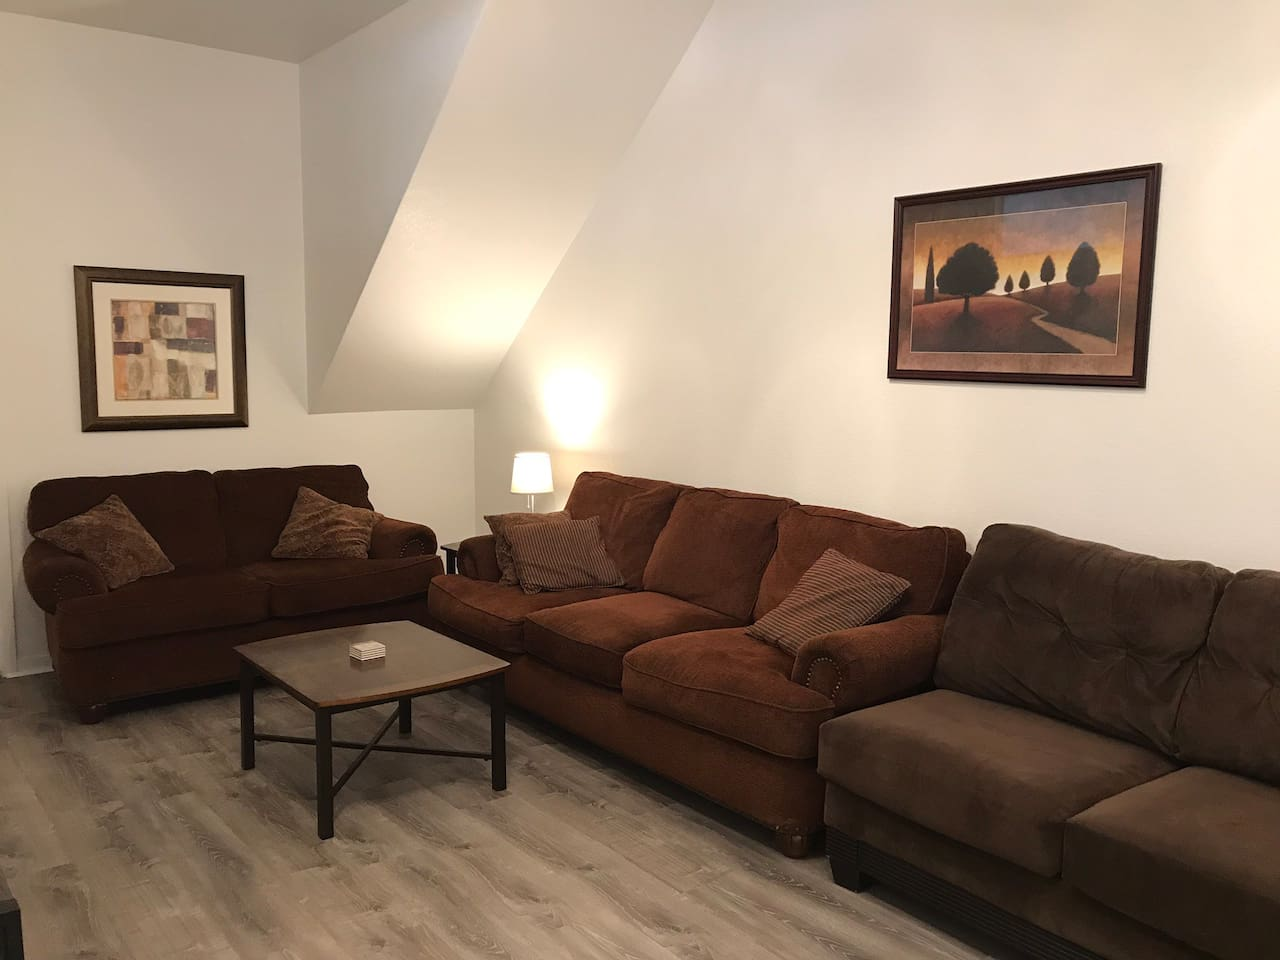 Relax on large comfy couches, under high ceilings! Wonderful amounts of space in this place!